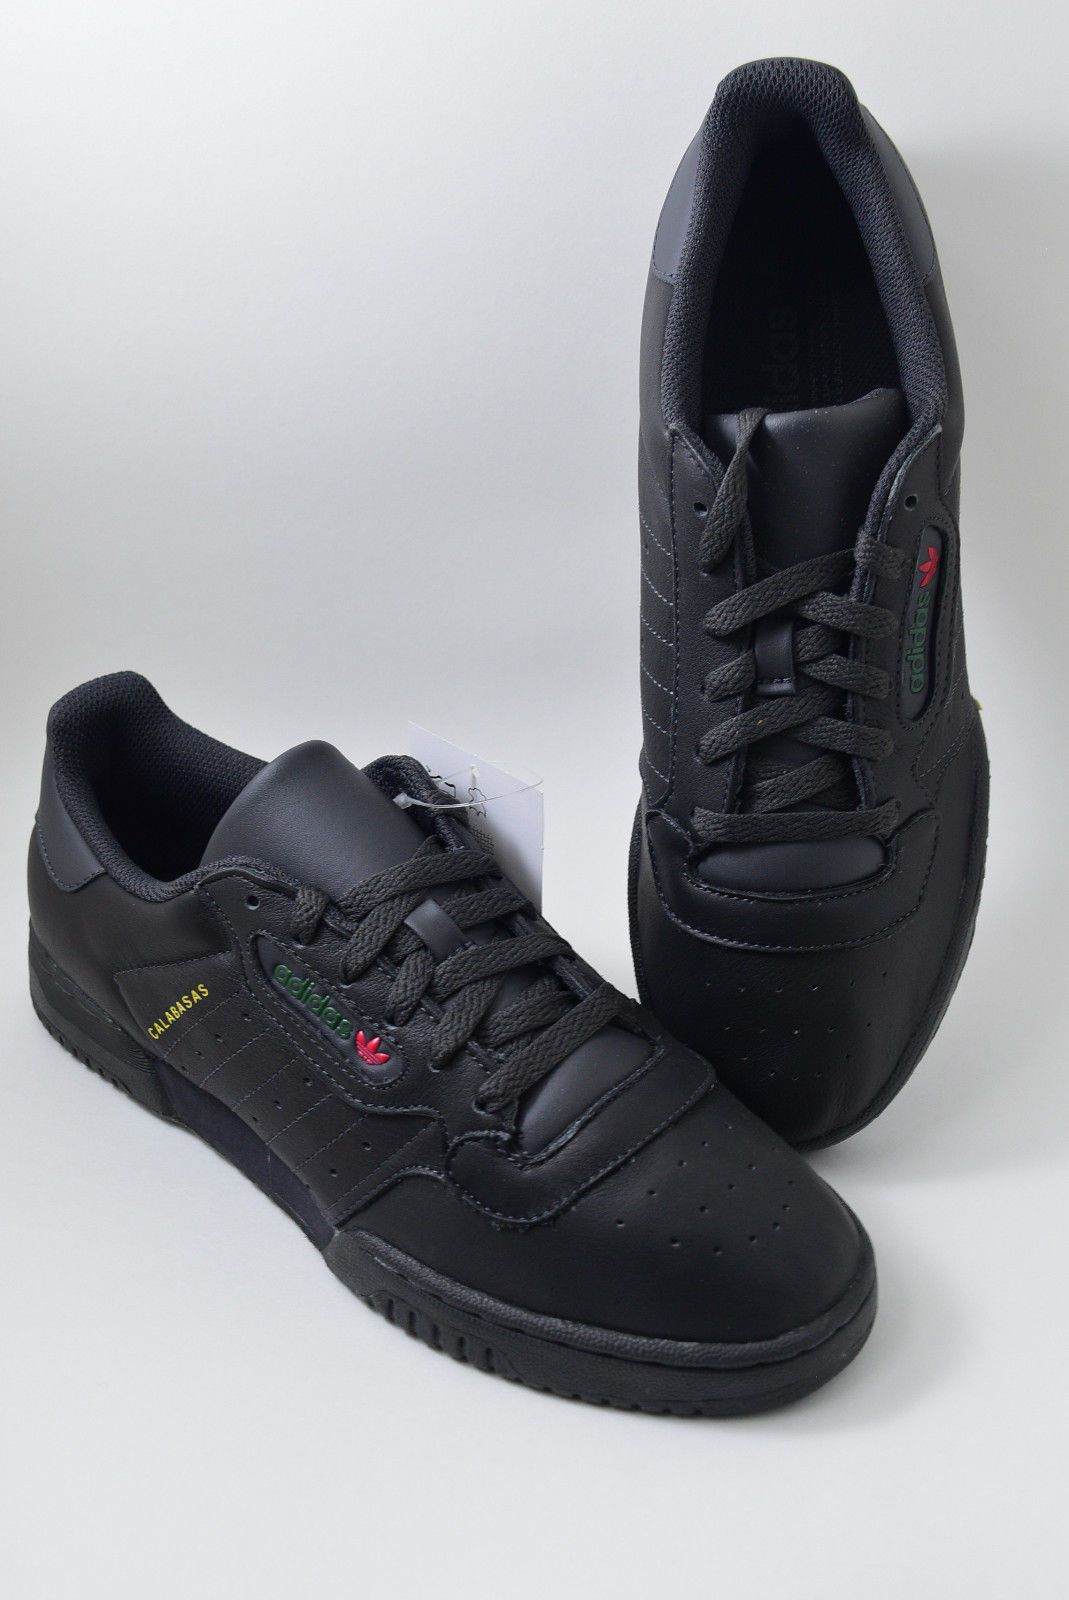 3816c577b Adidas Yeezy Powerphase Calabasas Core Black 7